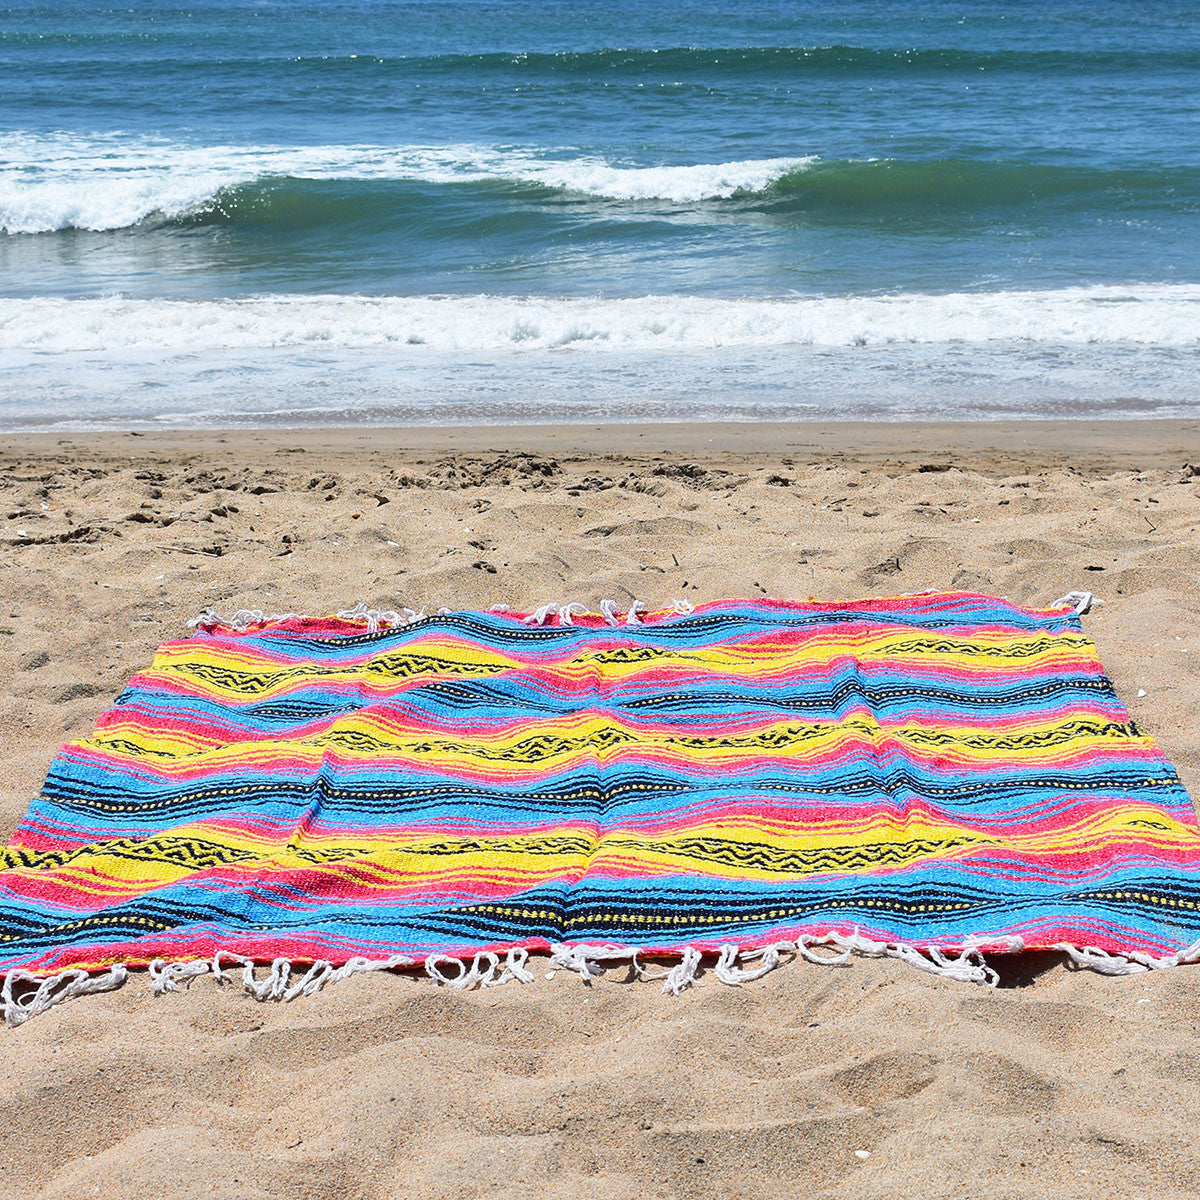 The perfect beach blanket, the Sunshine Day Dream Bohemian Fiesta Blanket shines all day long.